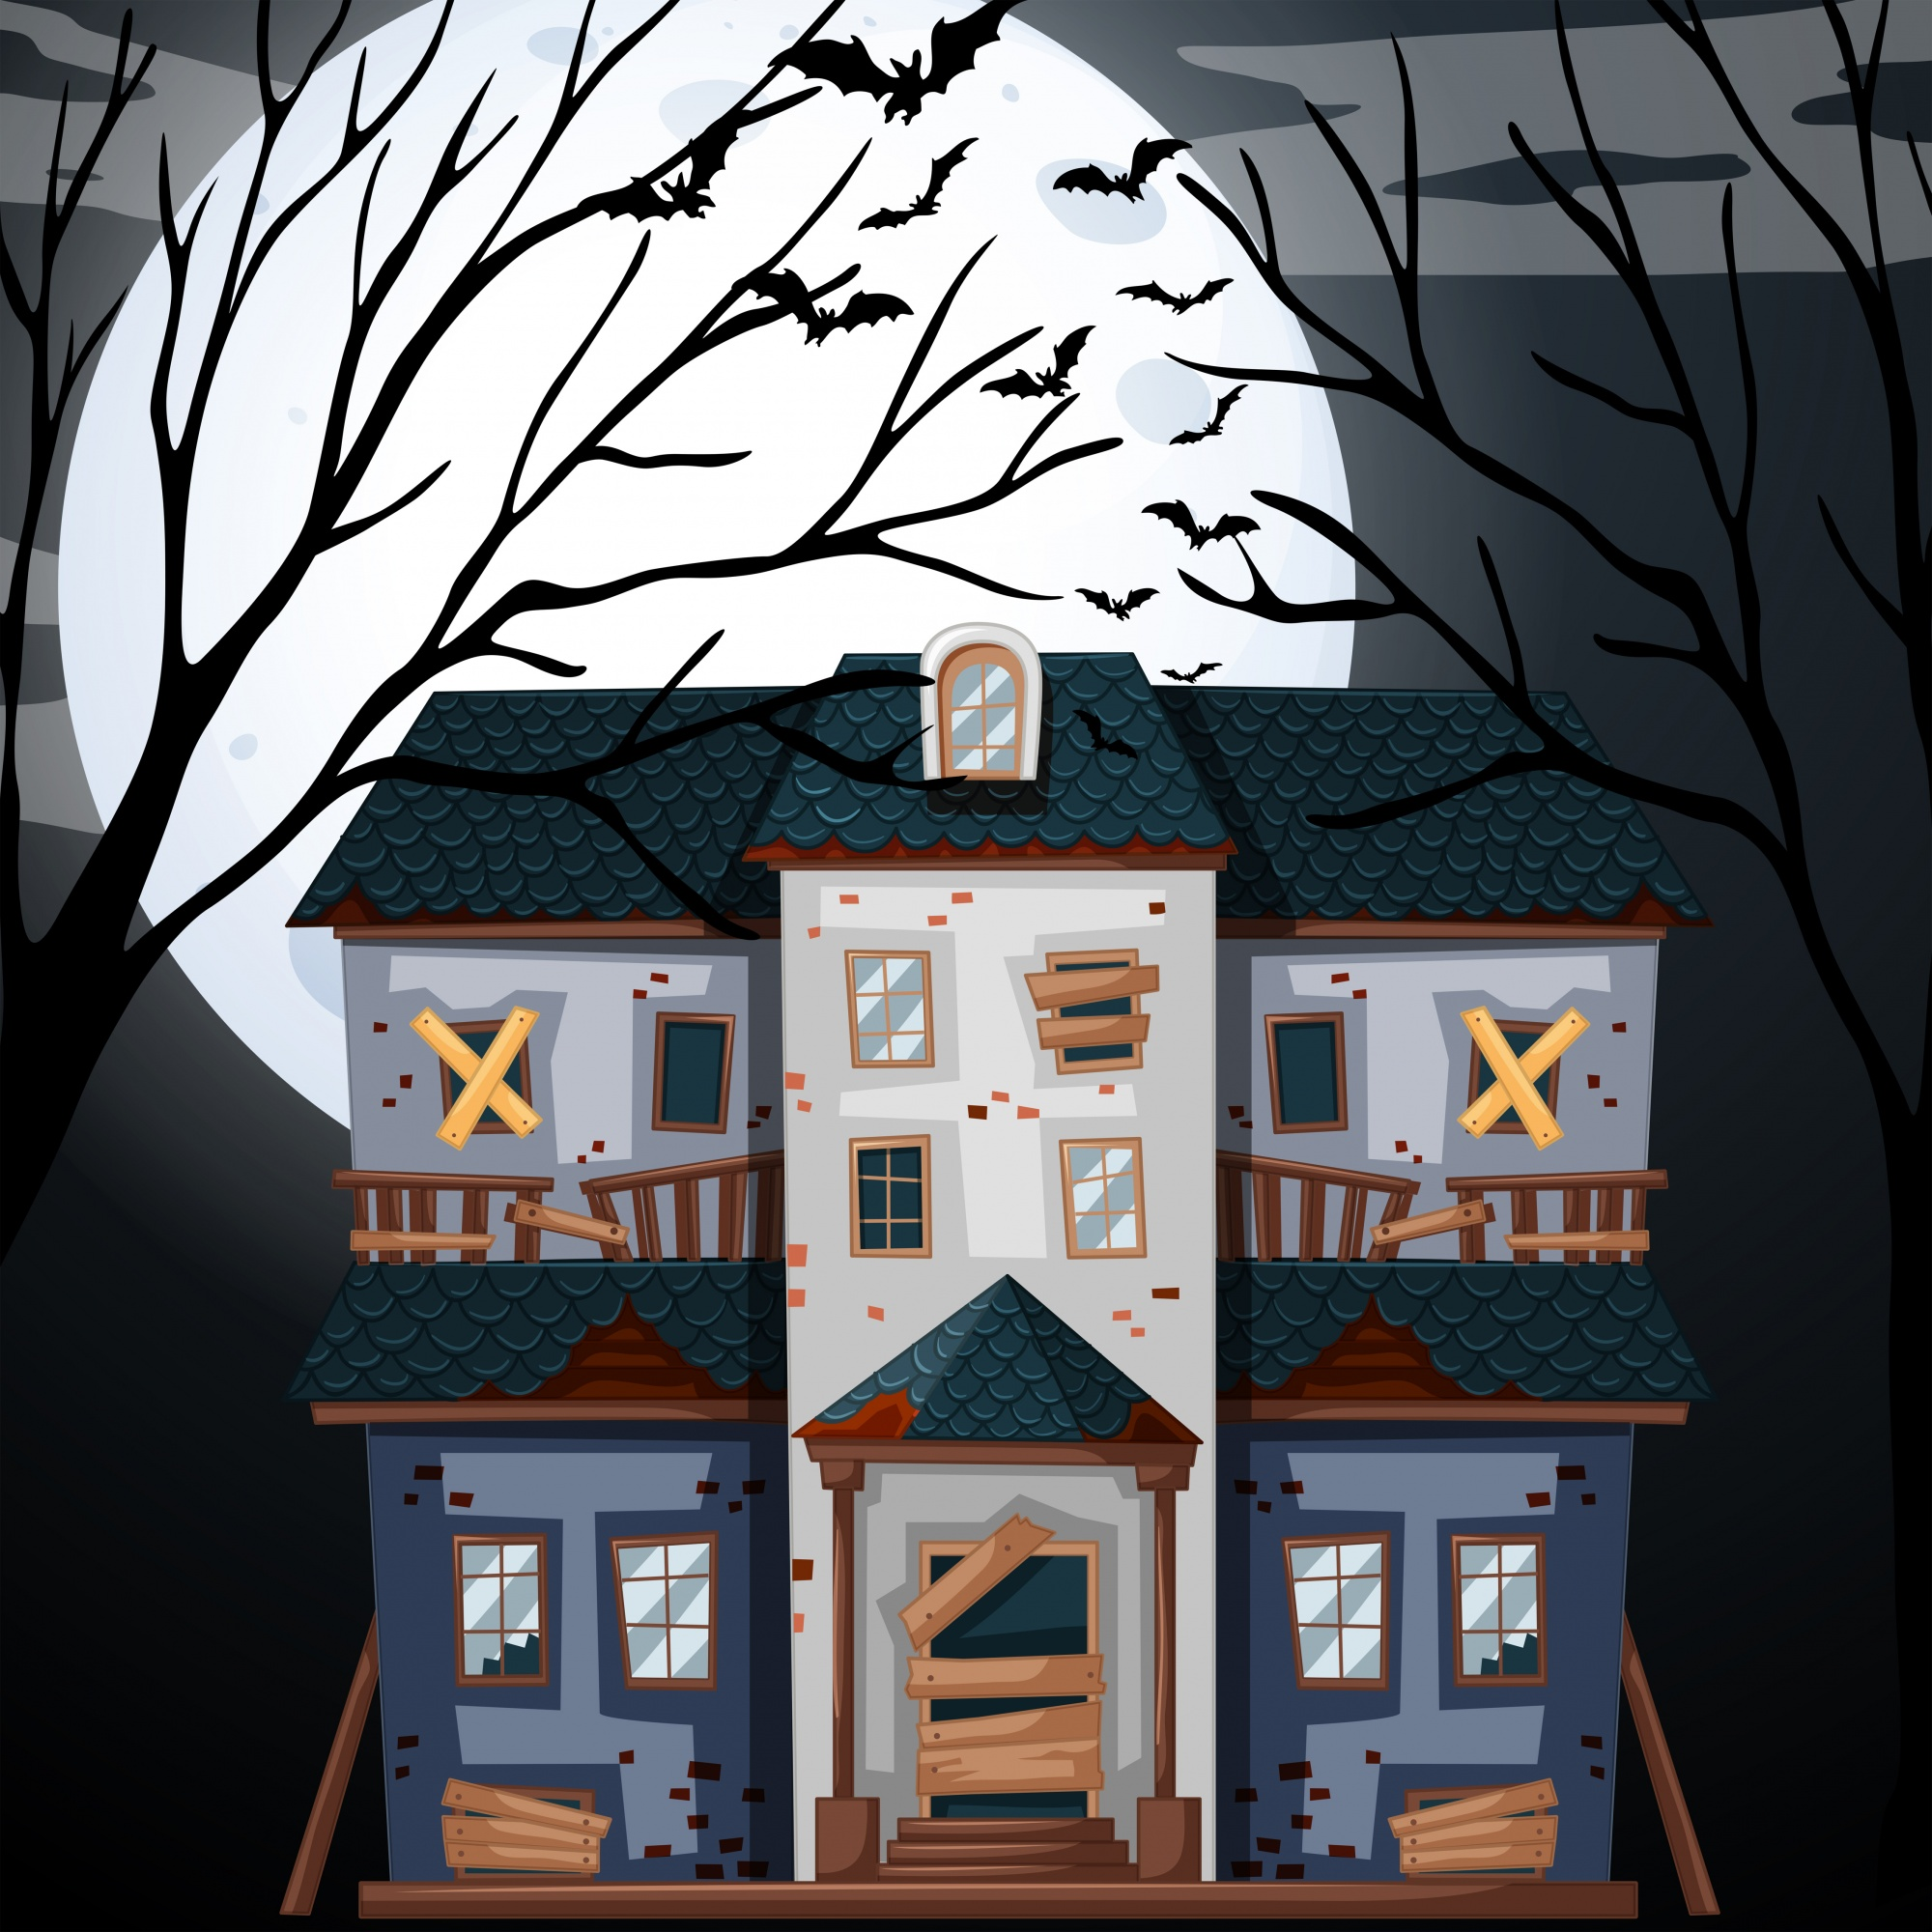 Haunted house on fullmoon night